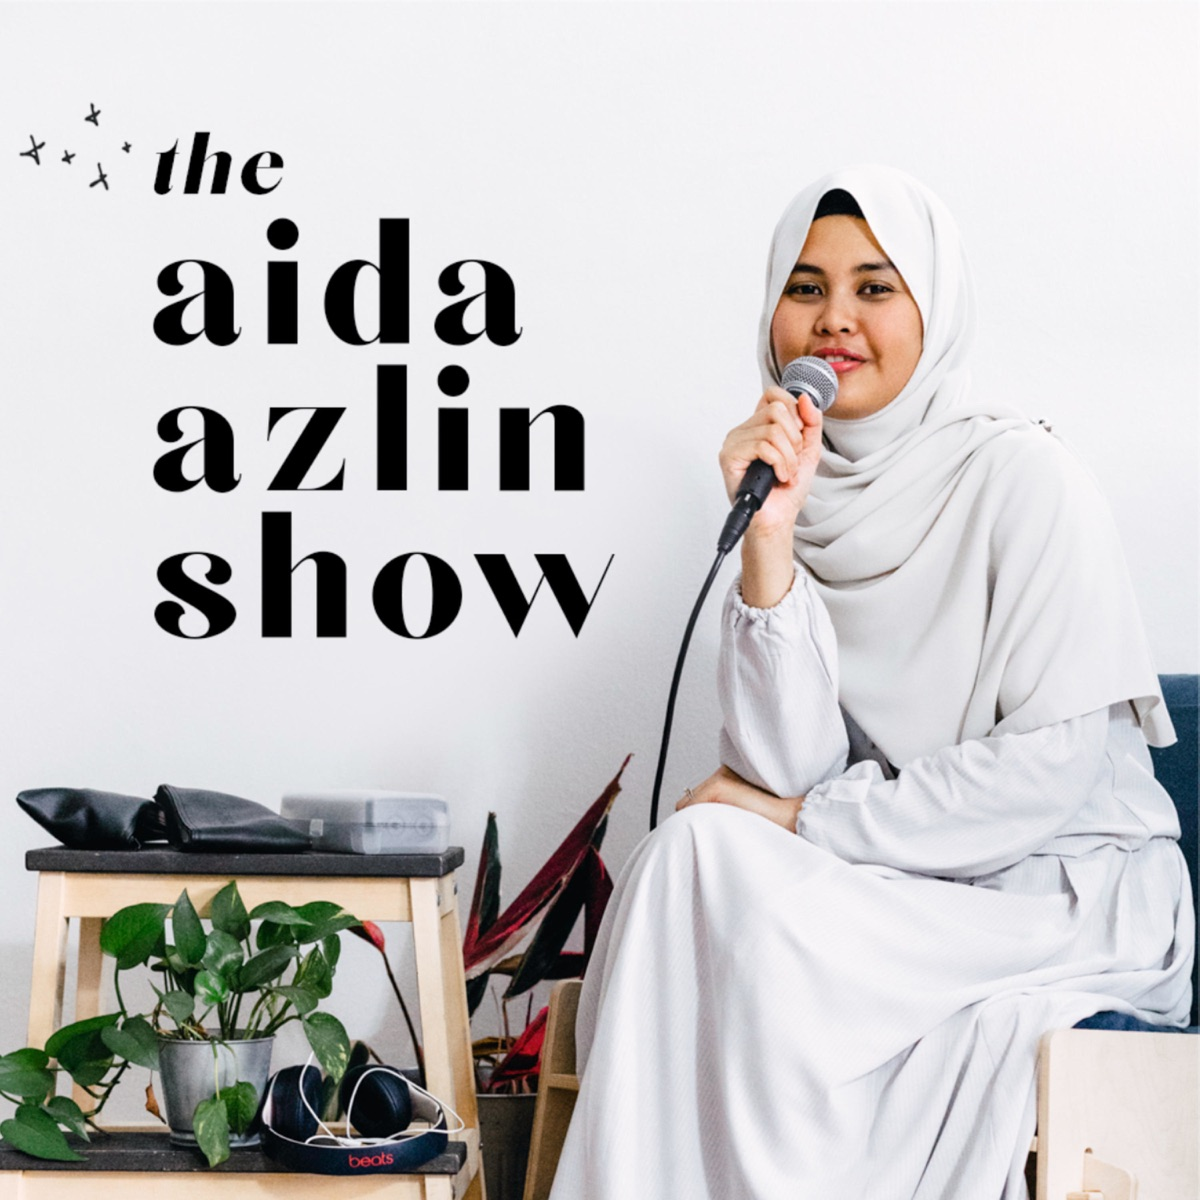 The Aida Azlin Show